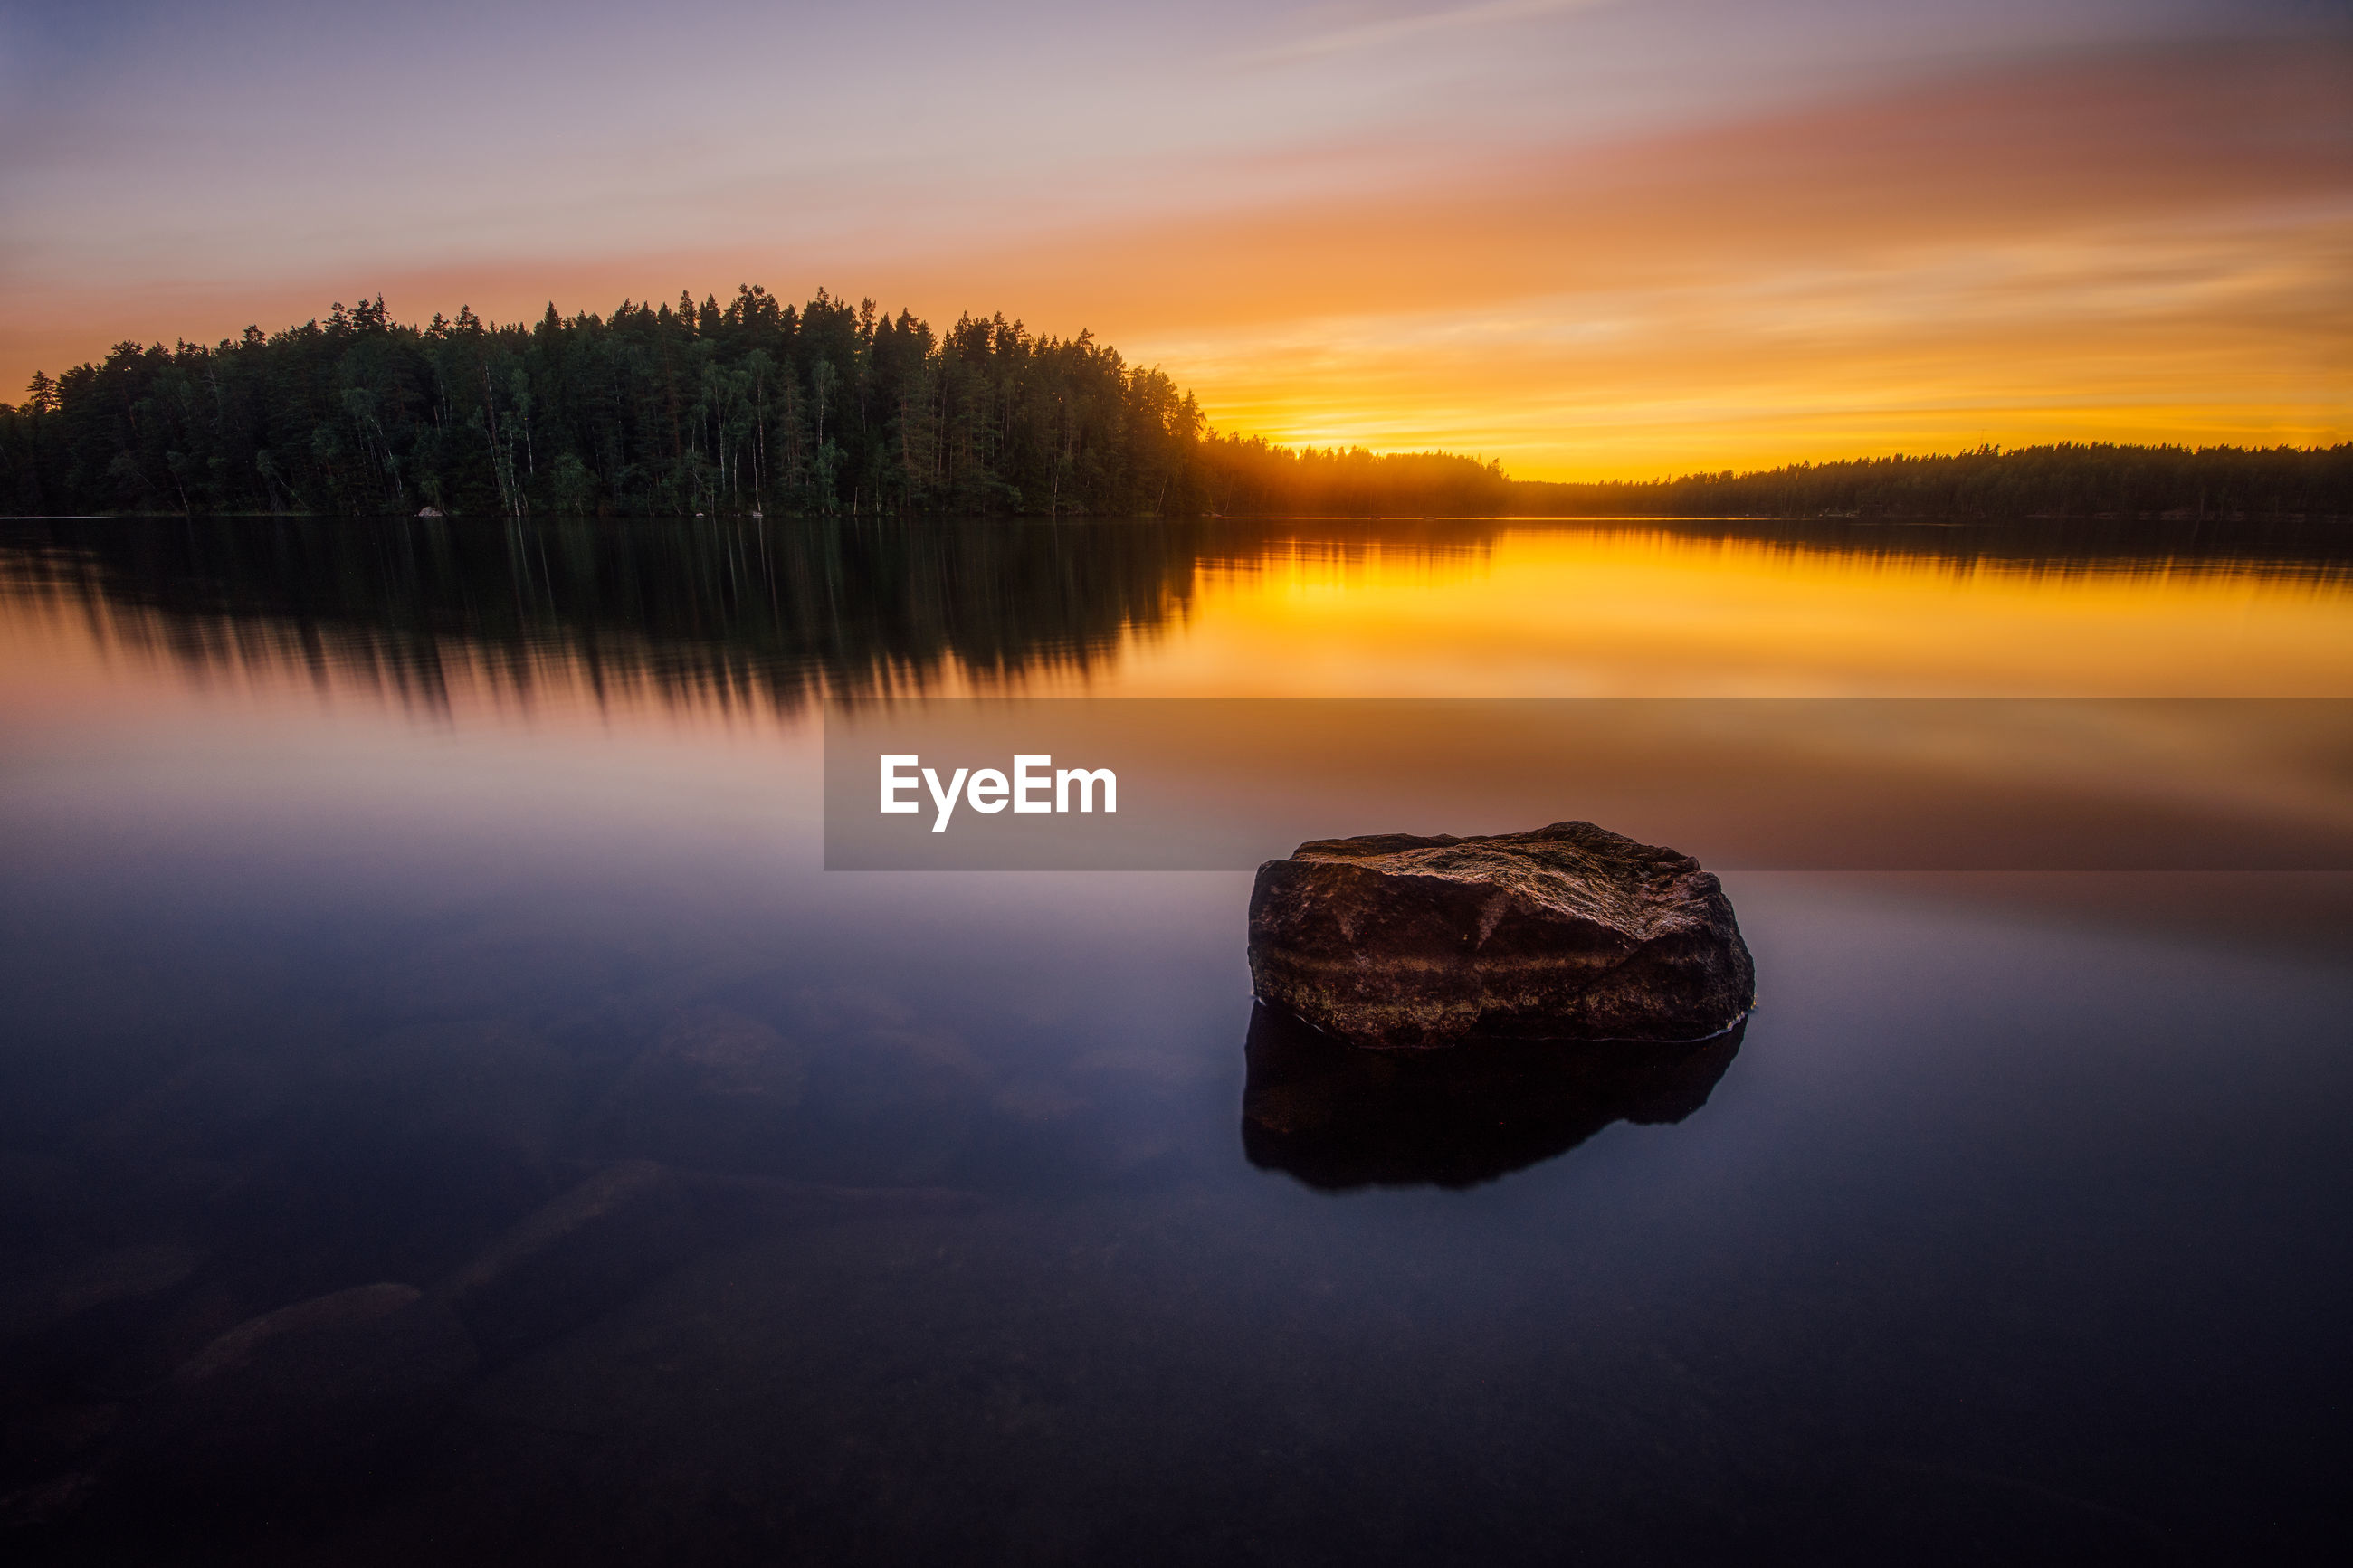 Scenic view of lake with rock and trees reflection at sunset